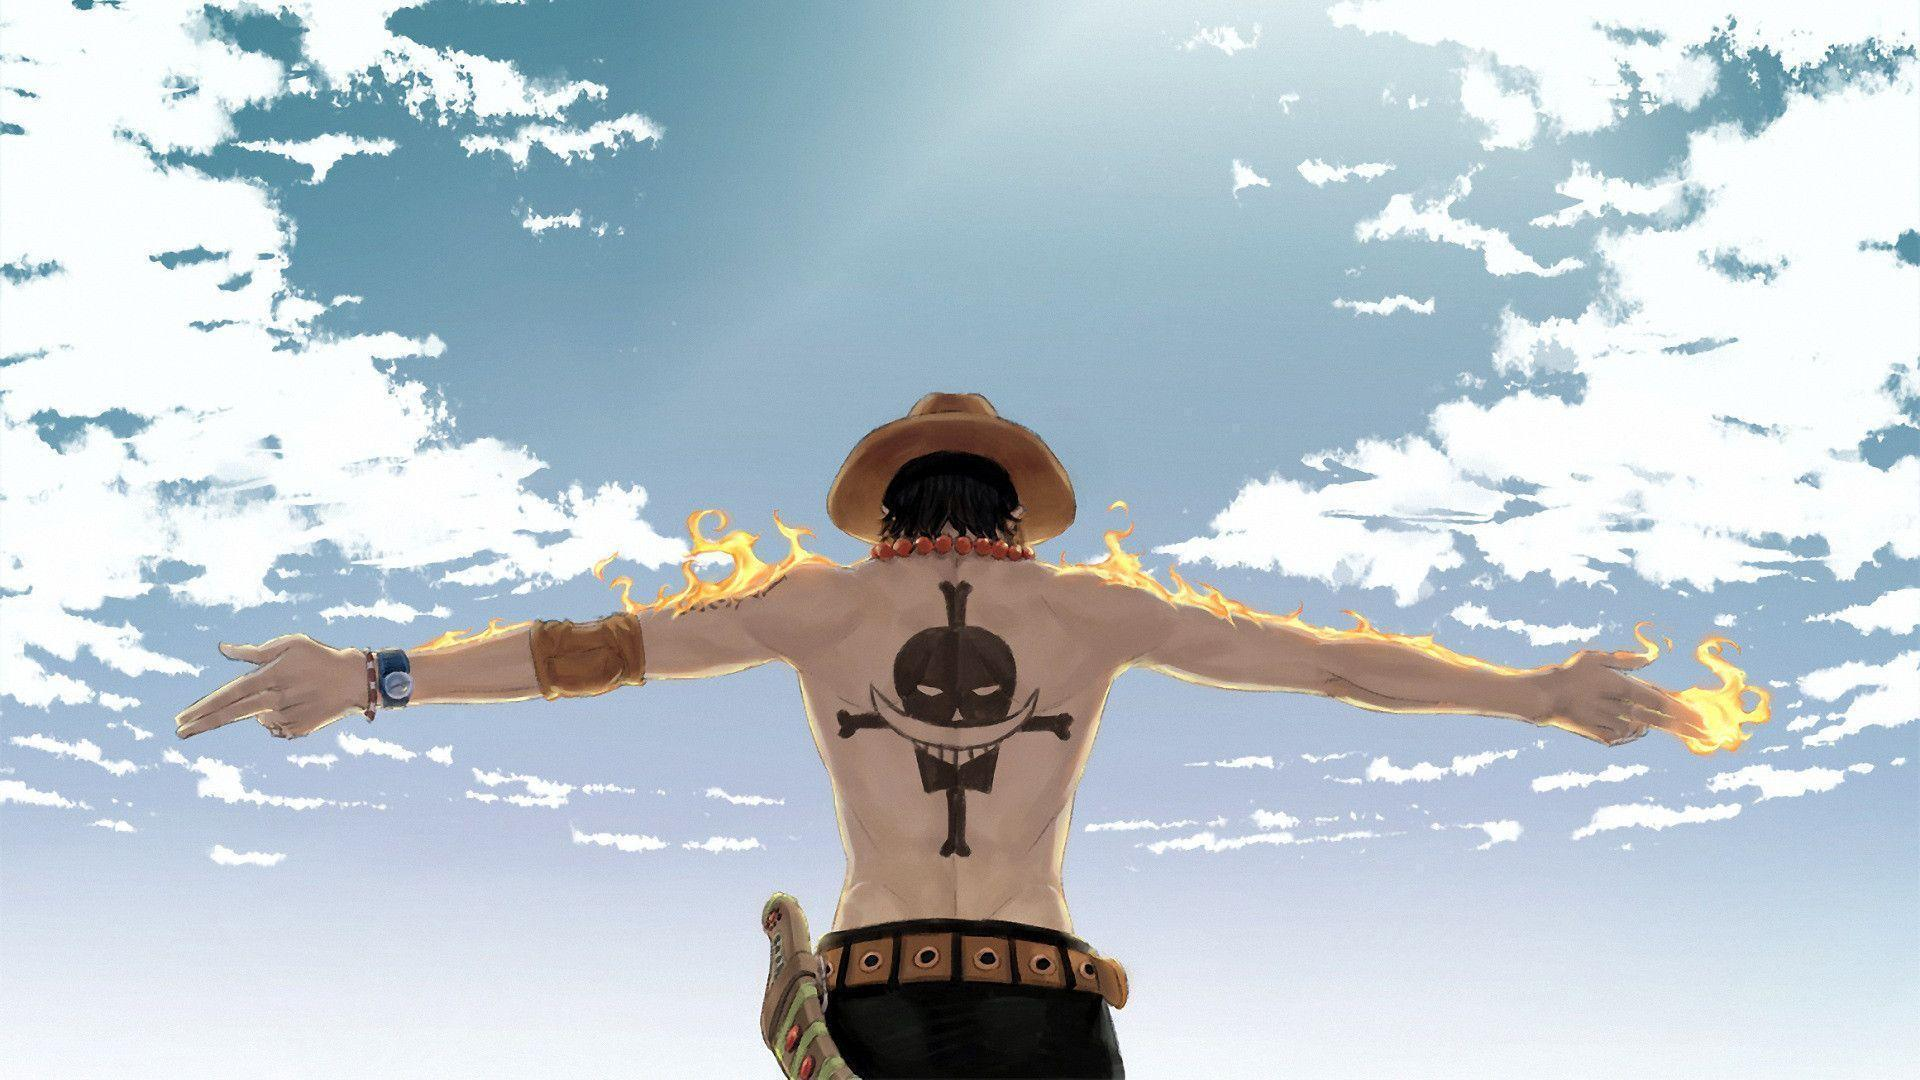 One Piece Luffy Wallpapers Widescreen Anime and Cartoon Wallpapers